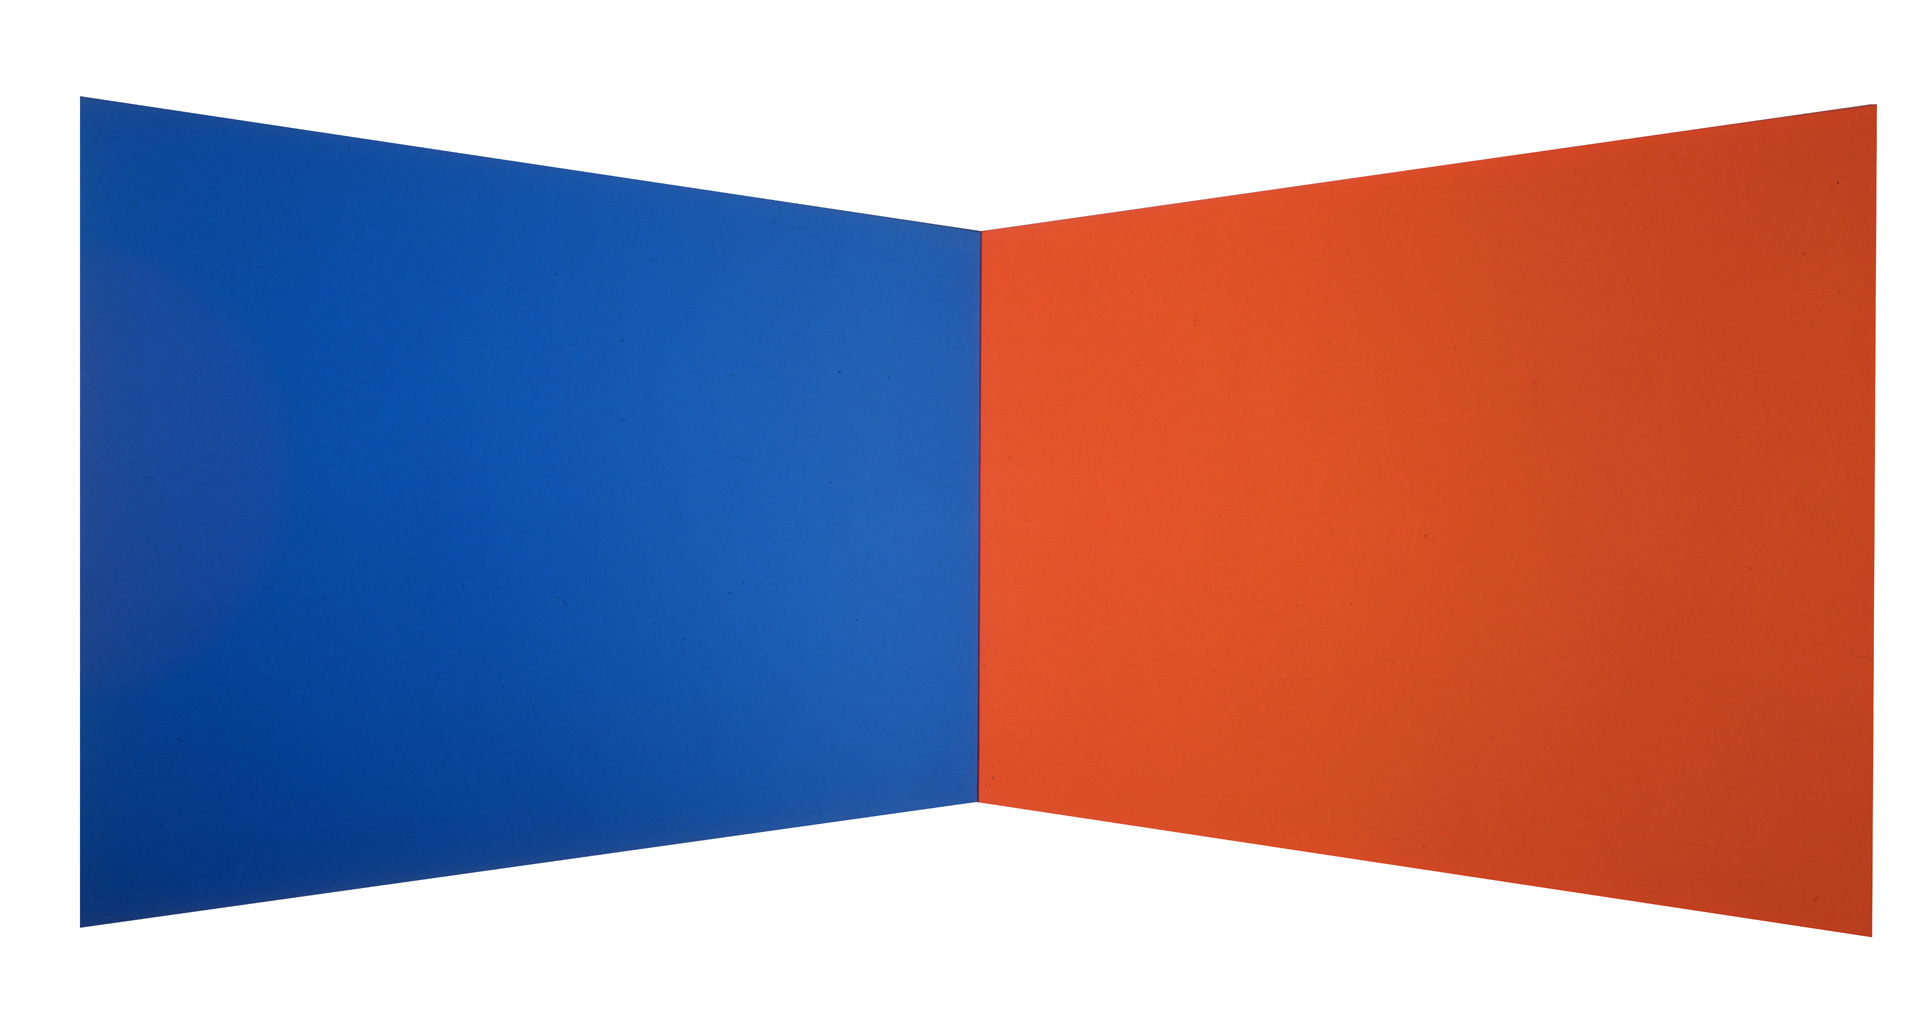 Ellsworth Kelly, Blue Red, 1968